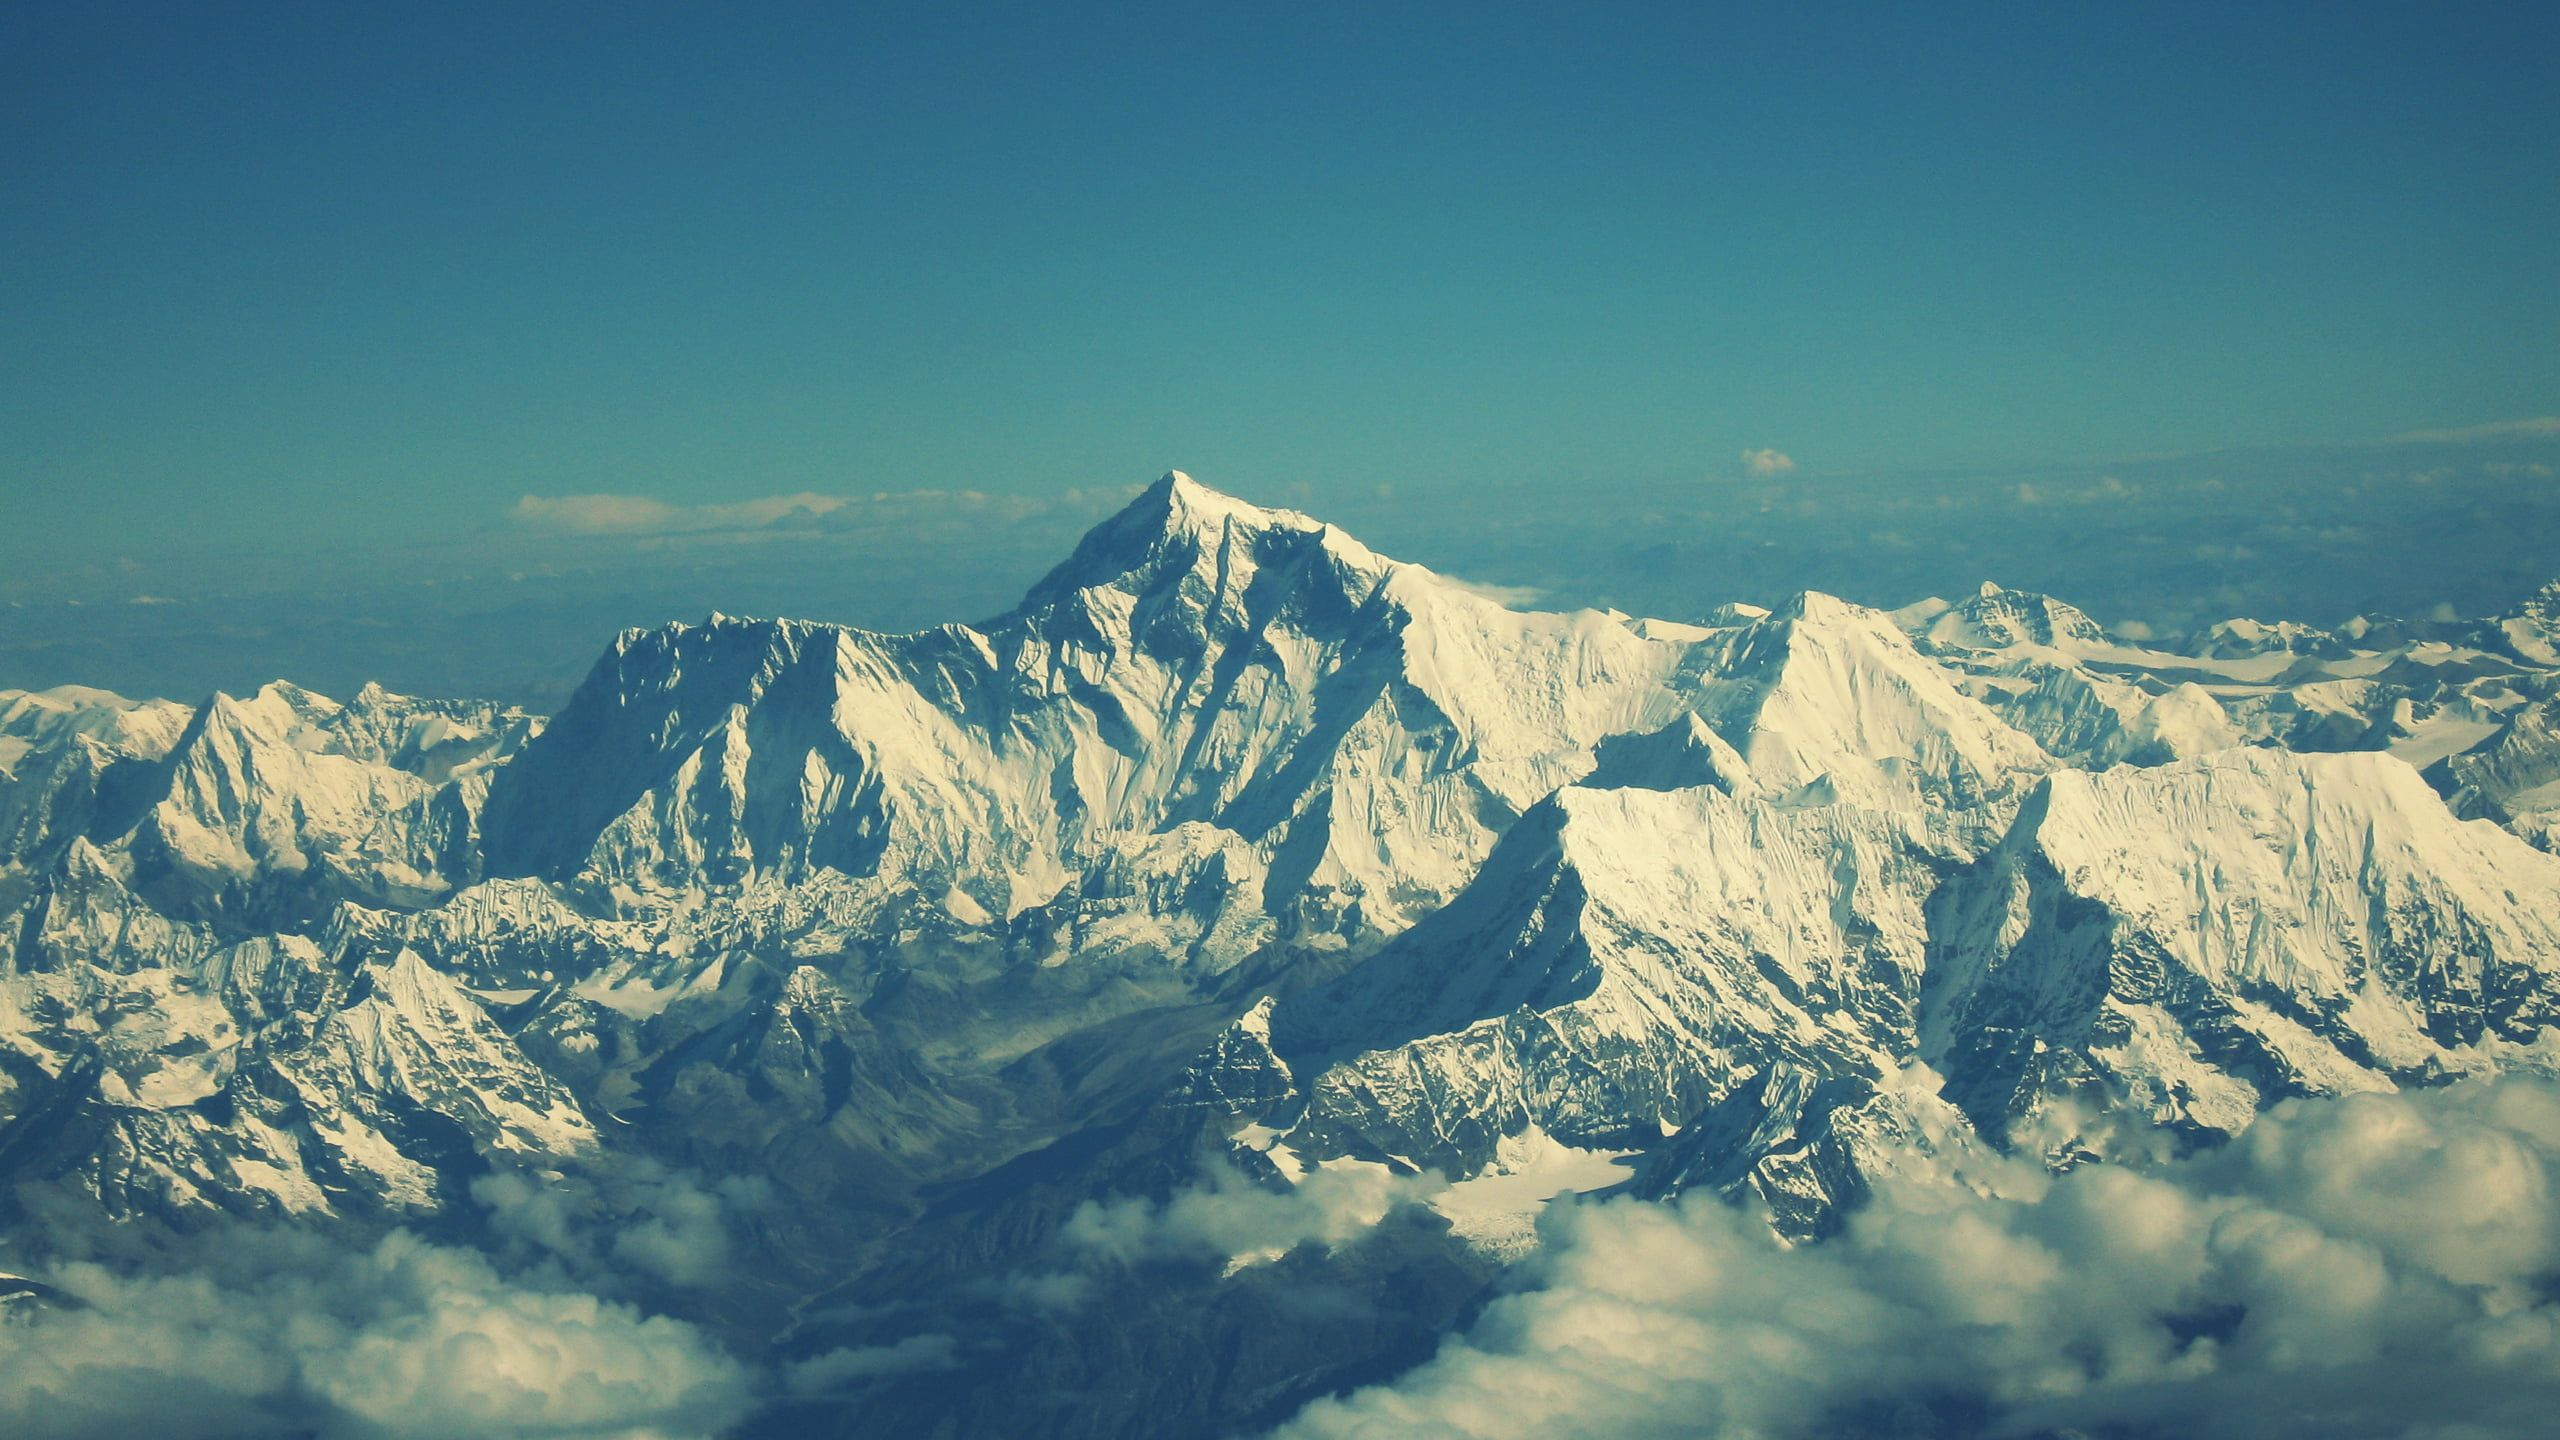 snow covered mountains landscape photography of snow mountains 2560x1440